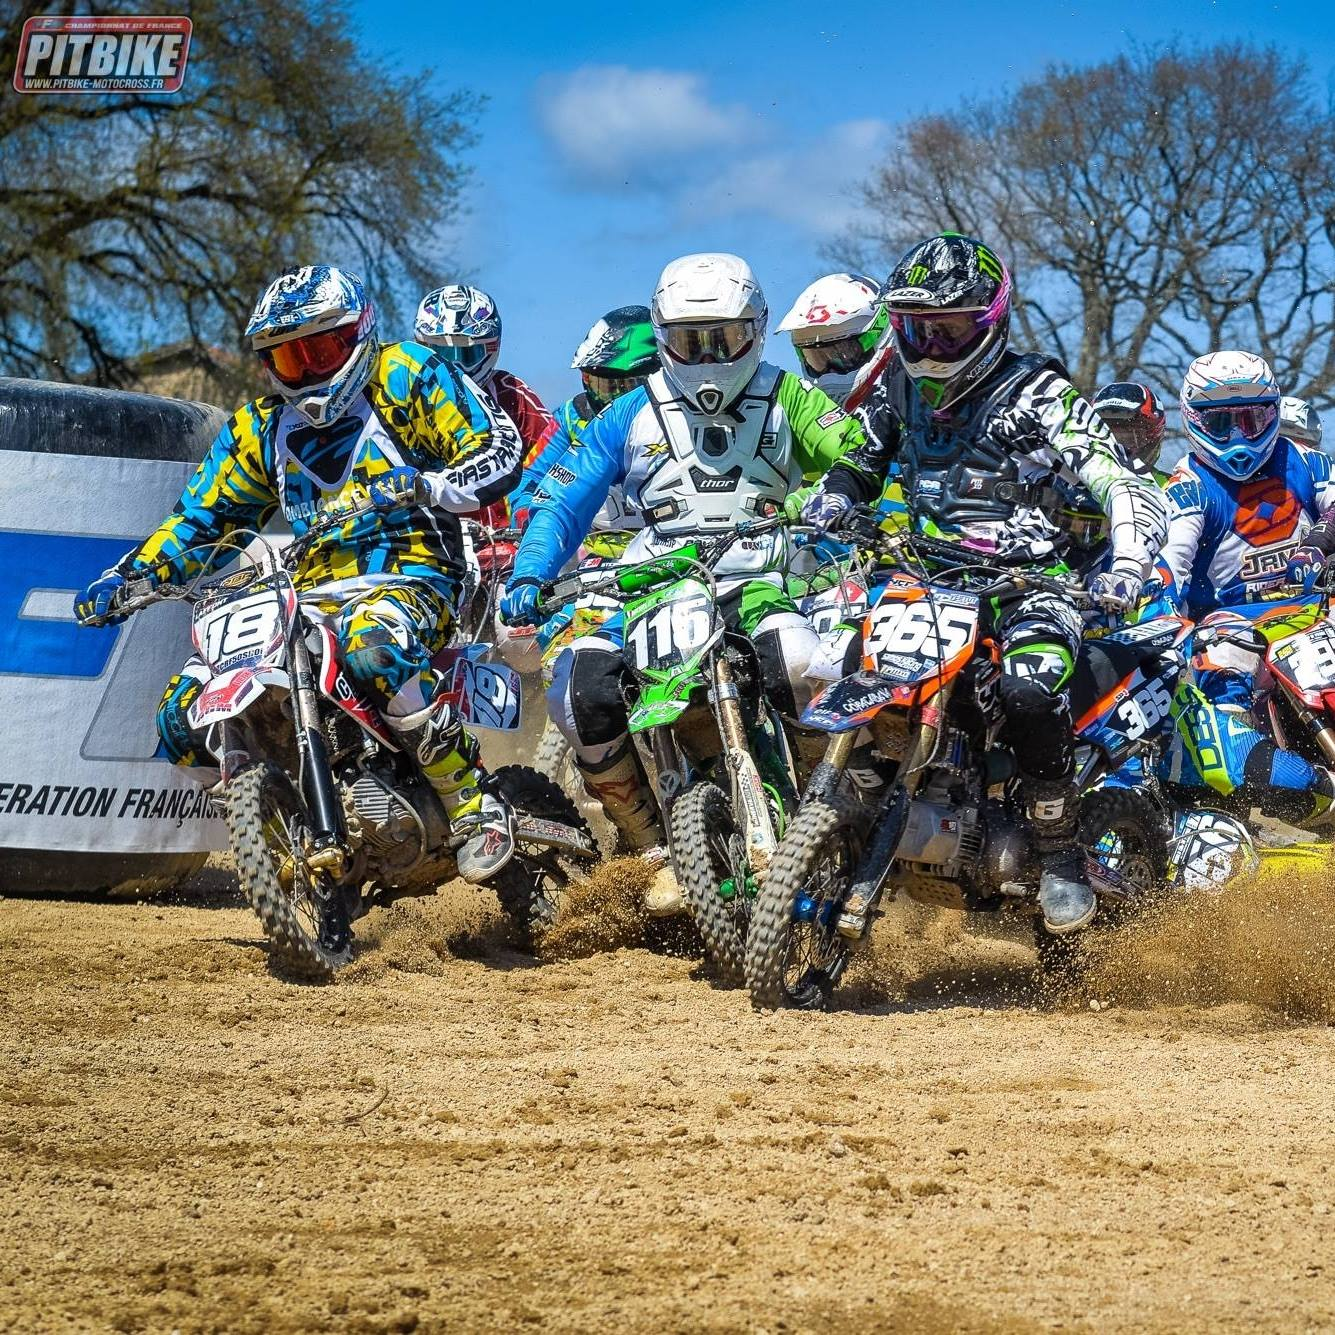 Championnat france 2017 pit bike